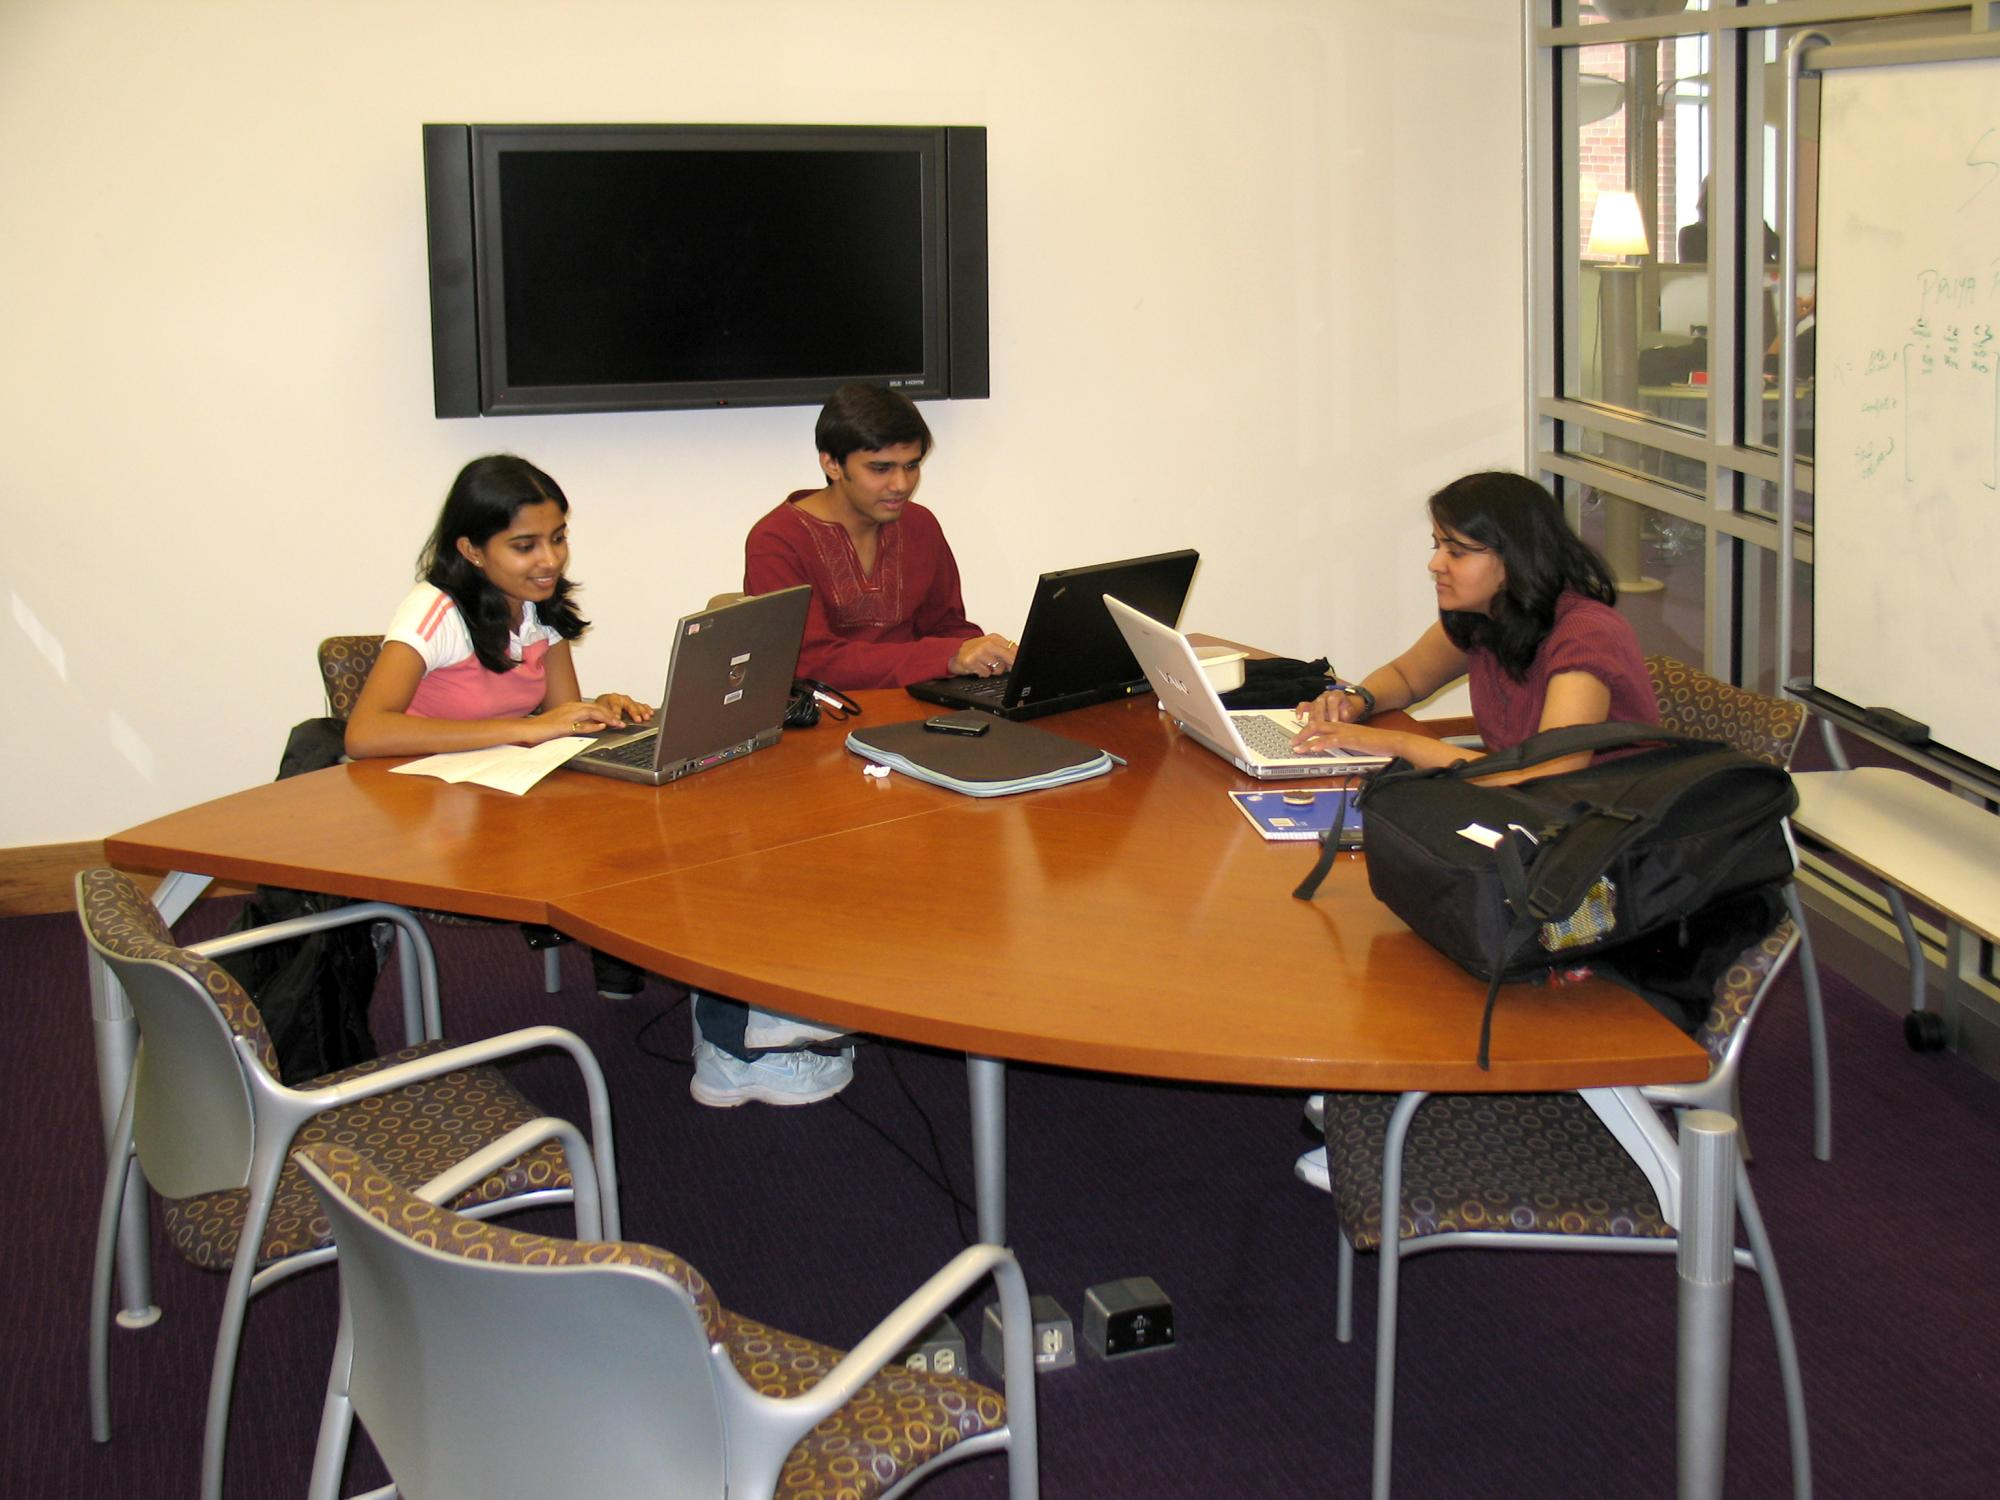 Students using a Learning Commons study room